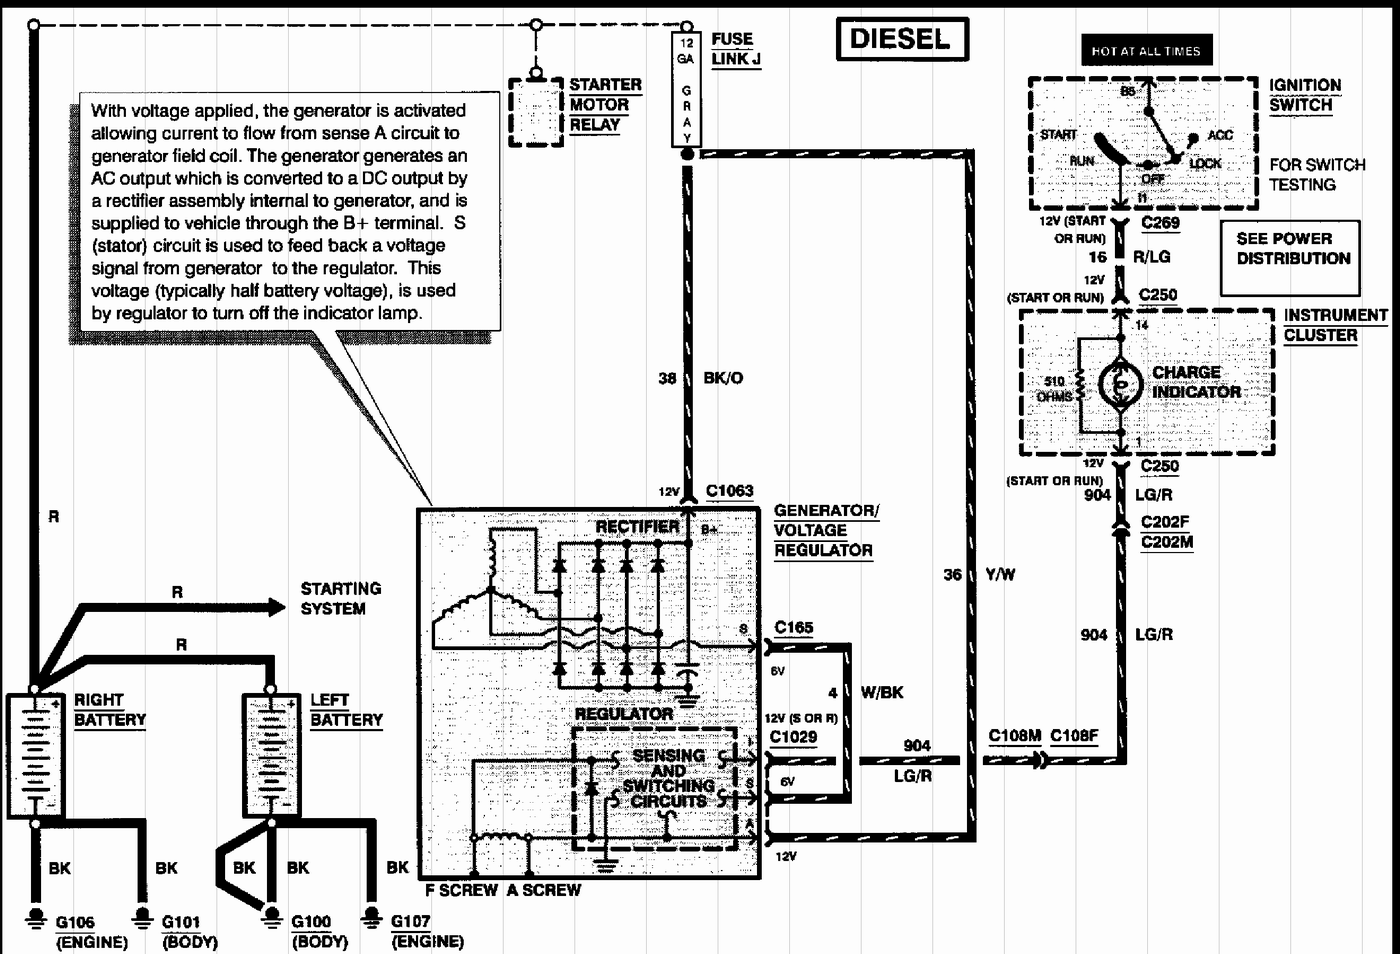 [SCHEMATICS_4HG]  A279 7 3 Powerstroke Wiring Diagram | Wiring Library | 1999 Powerstroke Wiring Diagrams |  | Wiring Library